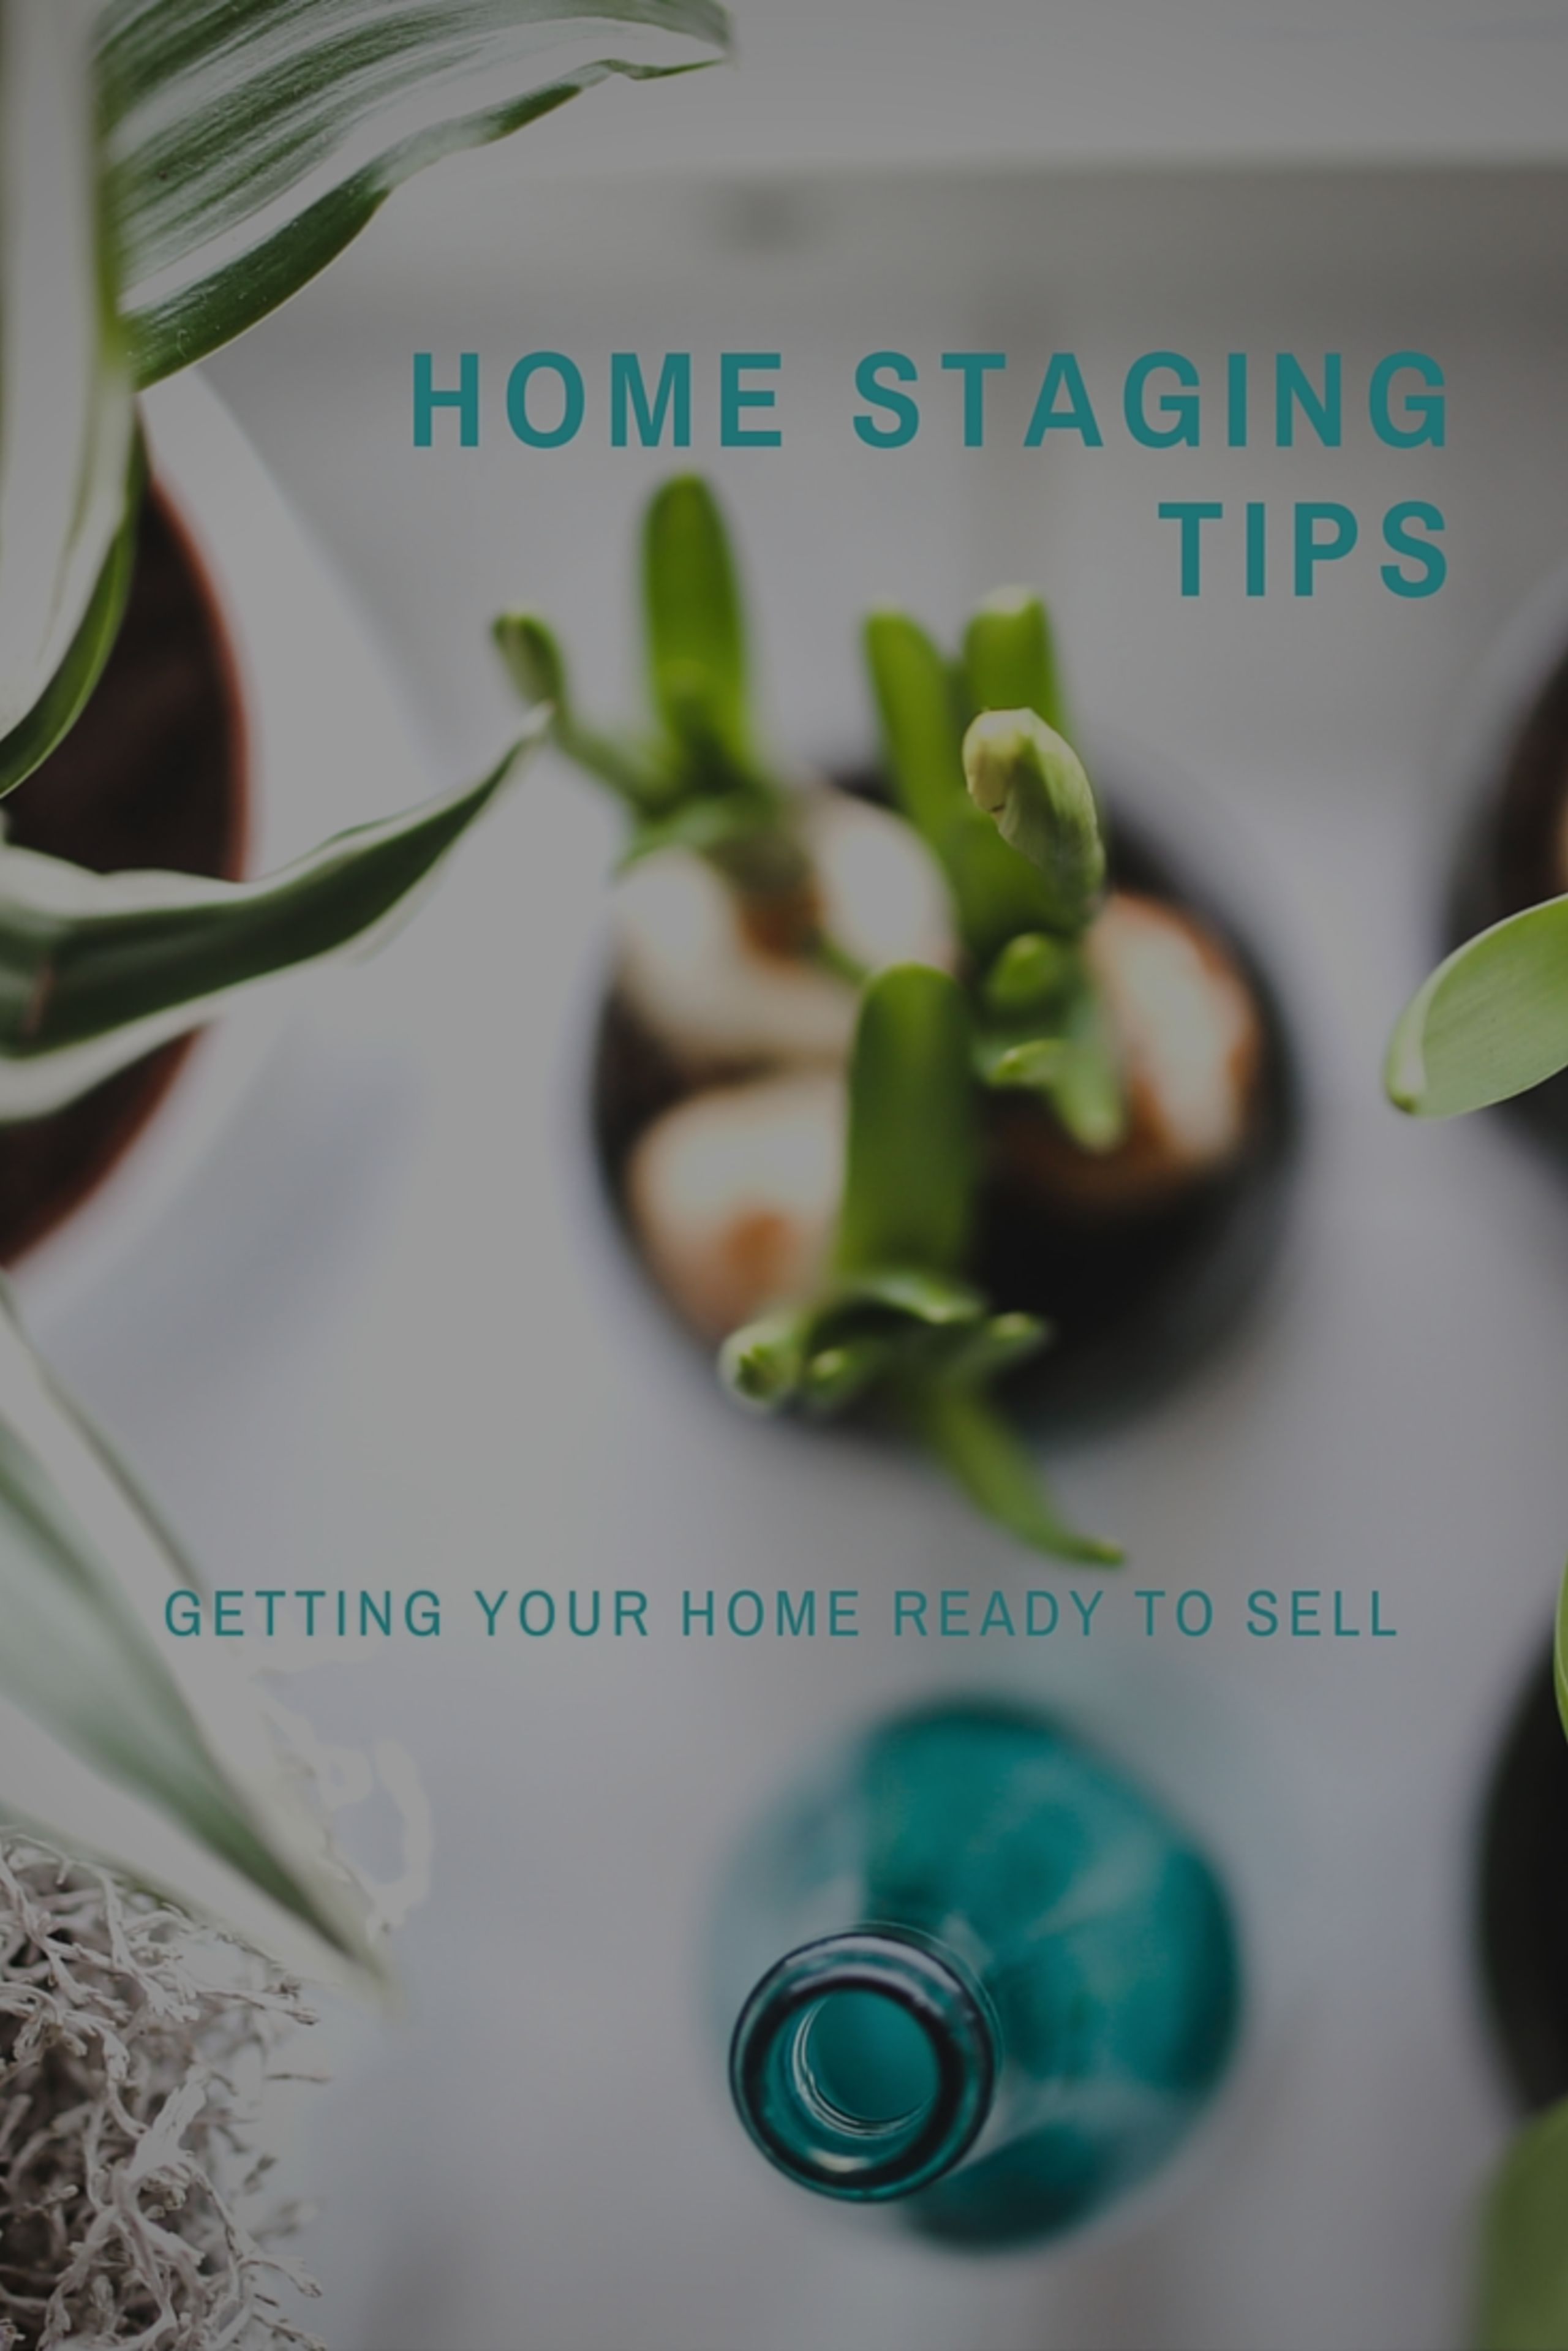 Home Staging Tips – Getting your home ready to sell.